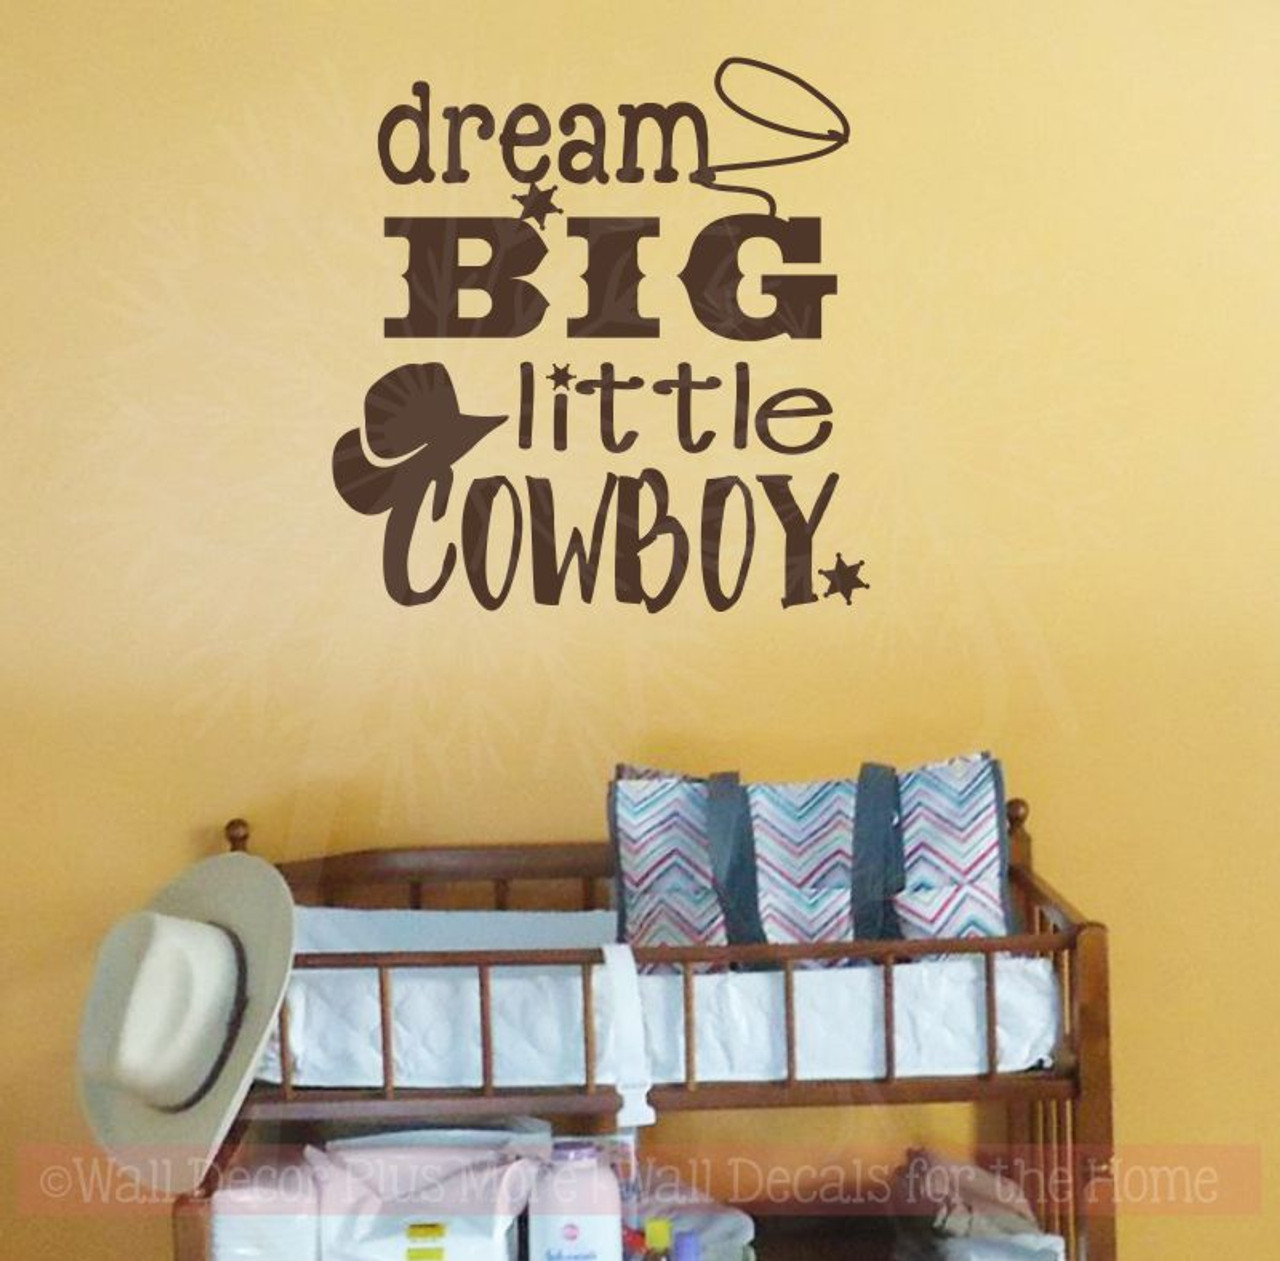 Dream Big Little Cowboy Western Wall Decals Quotes Boys Room Chocolate